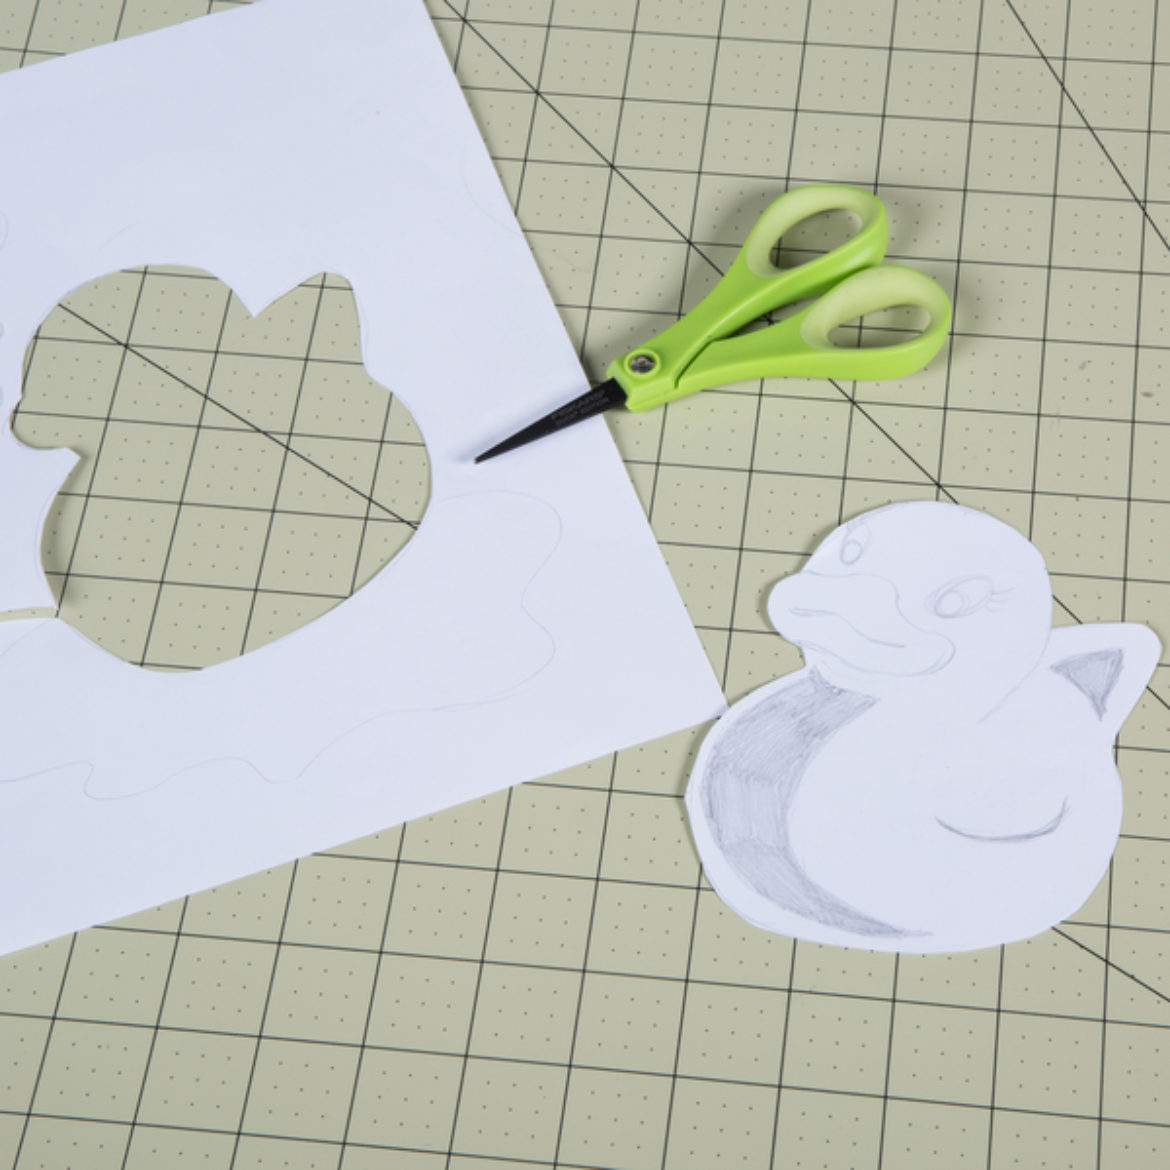 Full Duck outline cut out of the picture from the first step